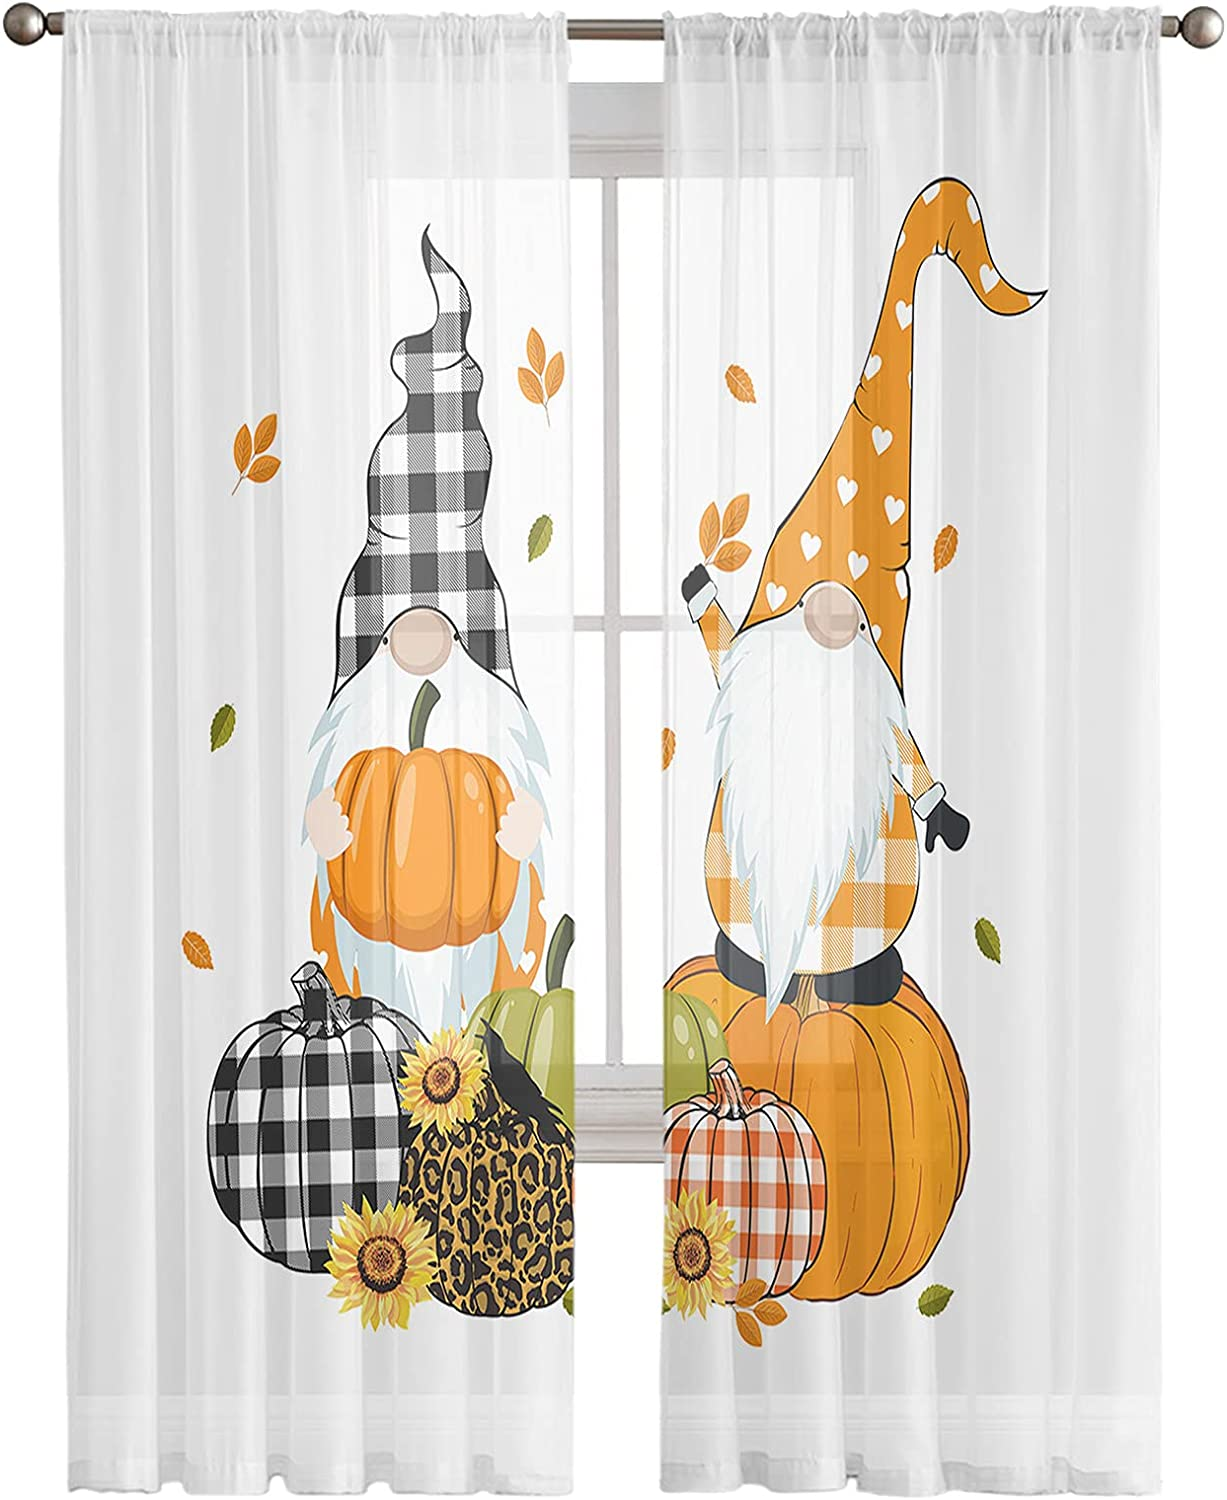 Kitchen Semi Sheer Today's only Limited time trial price Window Curtain Panels Fall 63 Har Inches Long